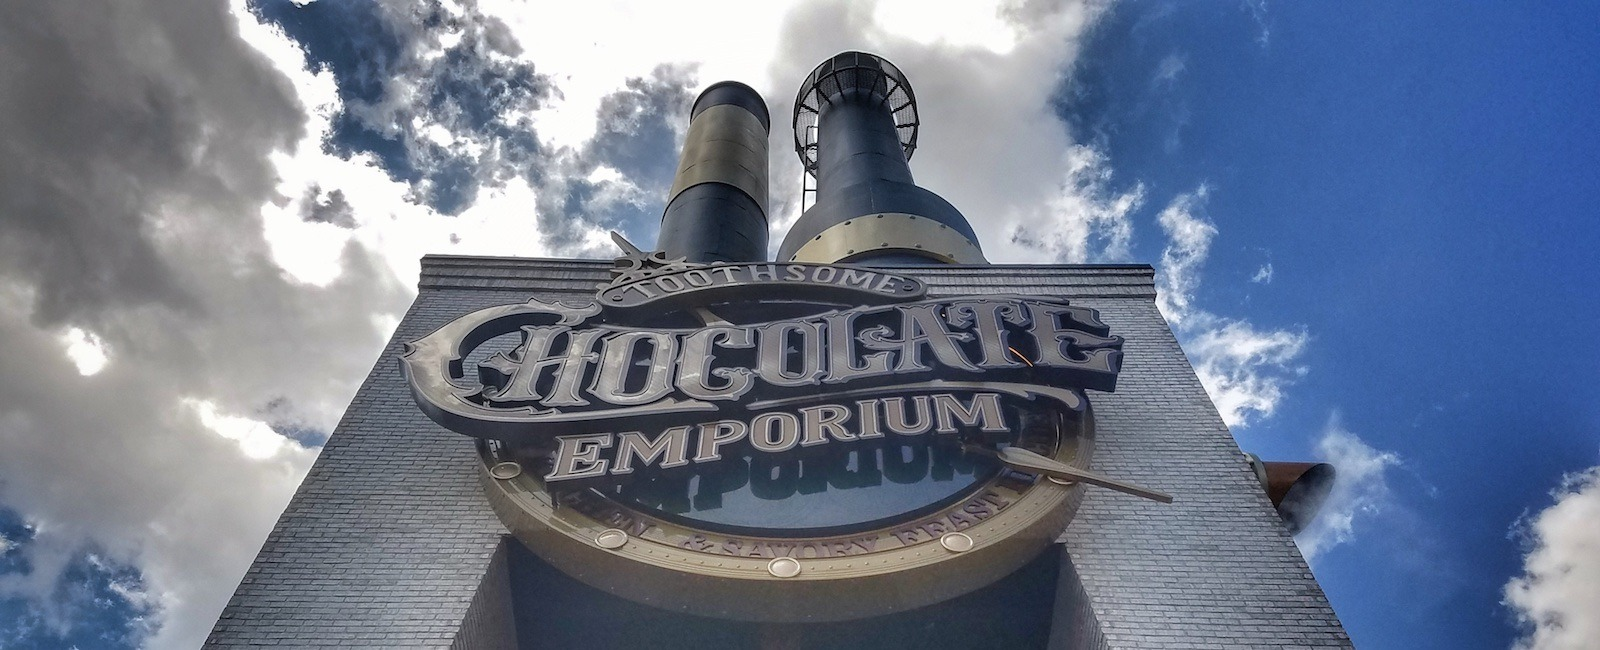 Relatively new to the Orlando restaurant scene is Toothsome at Citywalk. Here's our first impression Toothsome Universal Citywalk review.